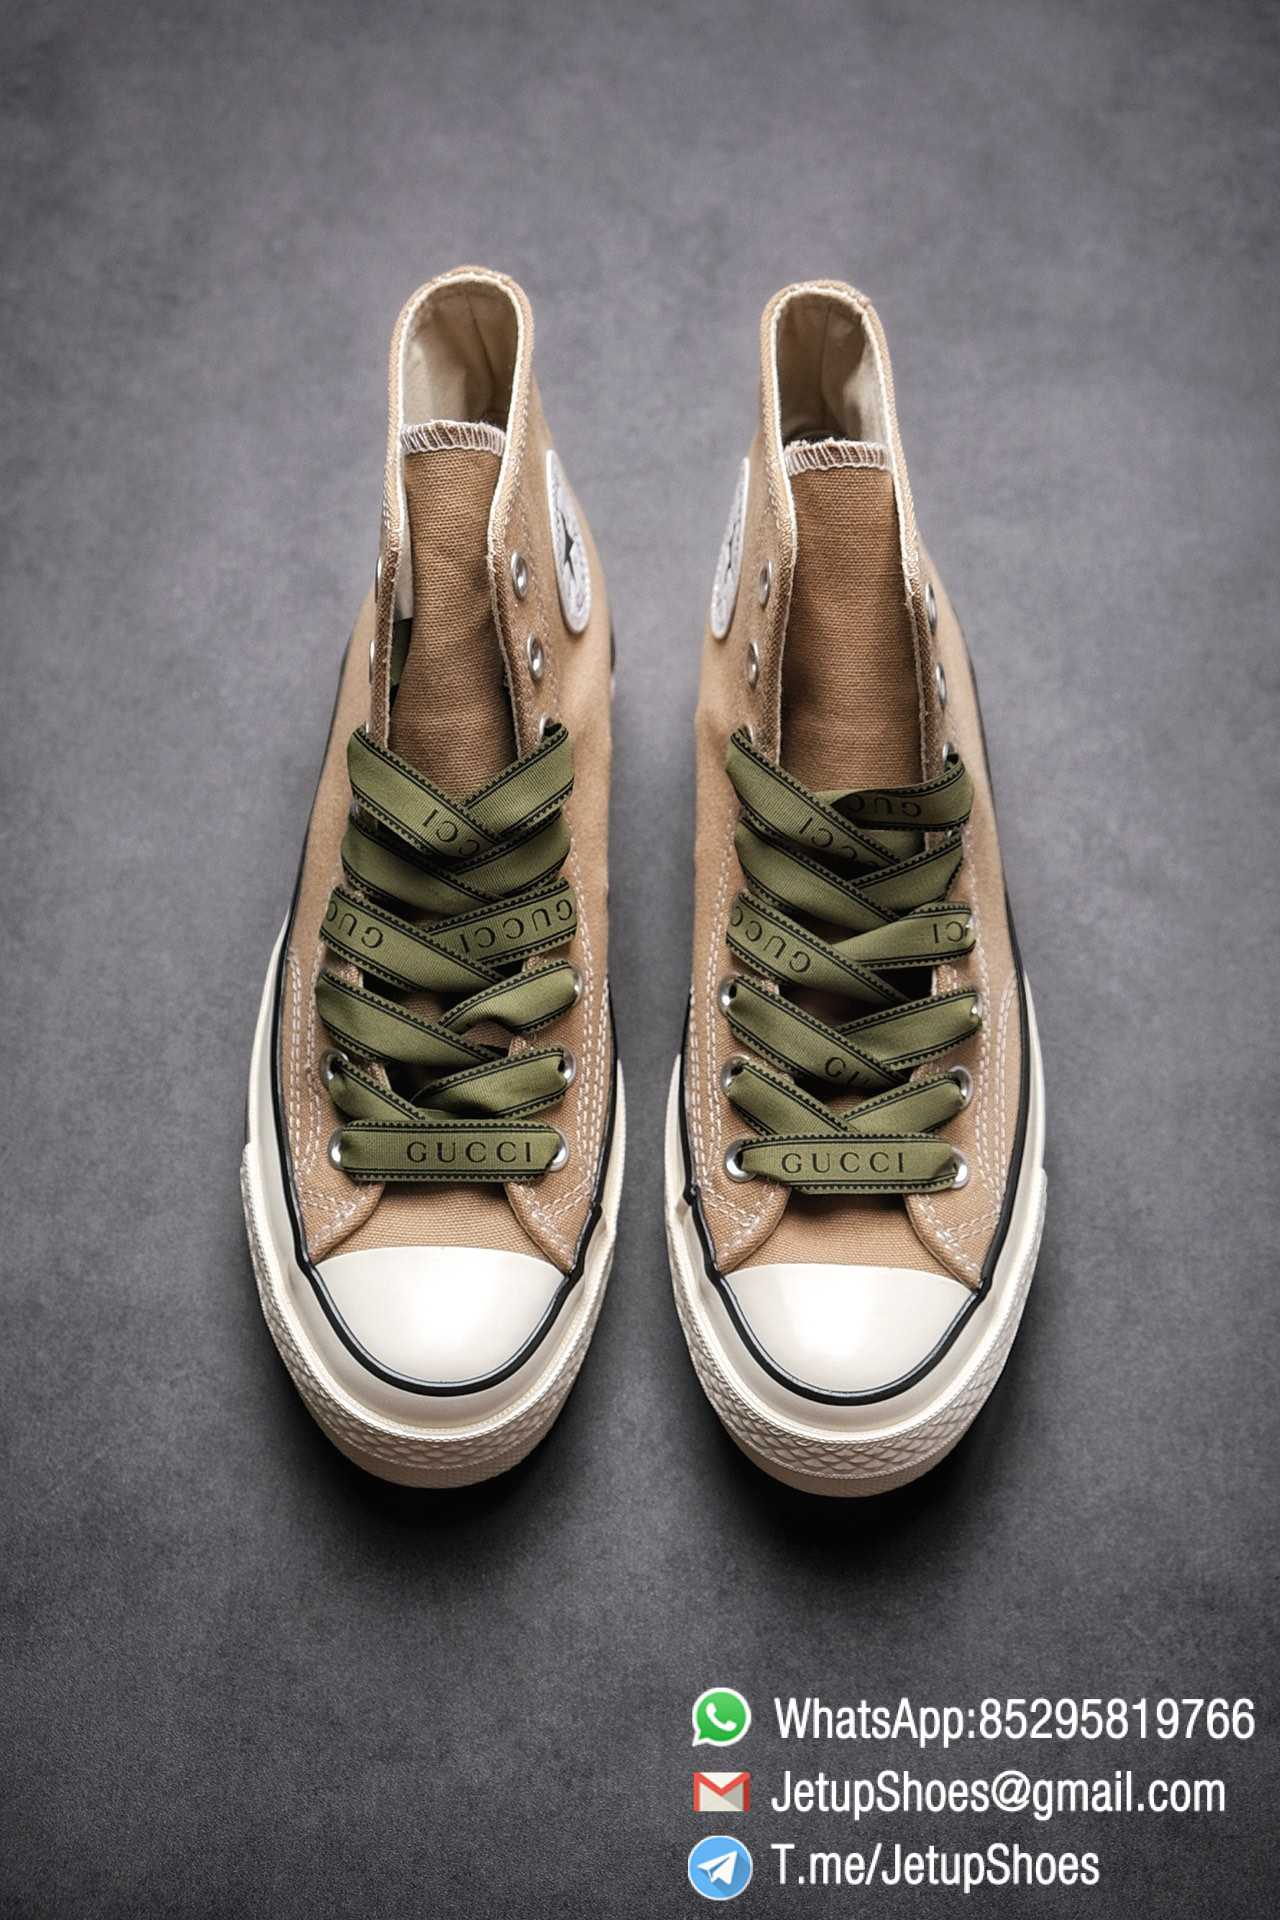 Womens Converse 1970S Special Collaboration Sneaker High Top Trainer Sneakers Vintage Inspired Green Shoelace Black Upper 2021 Spring 02